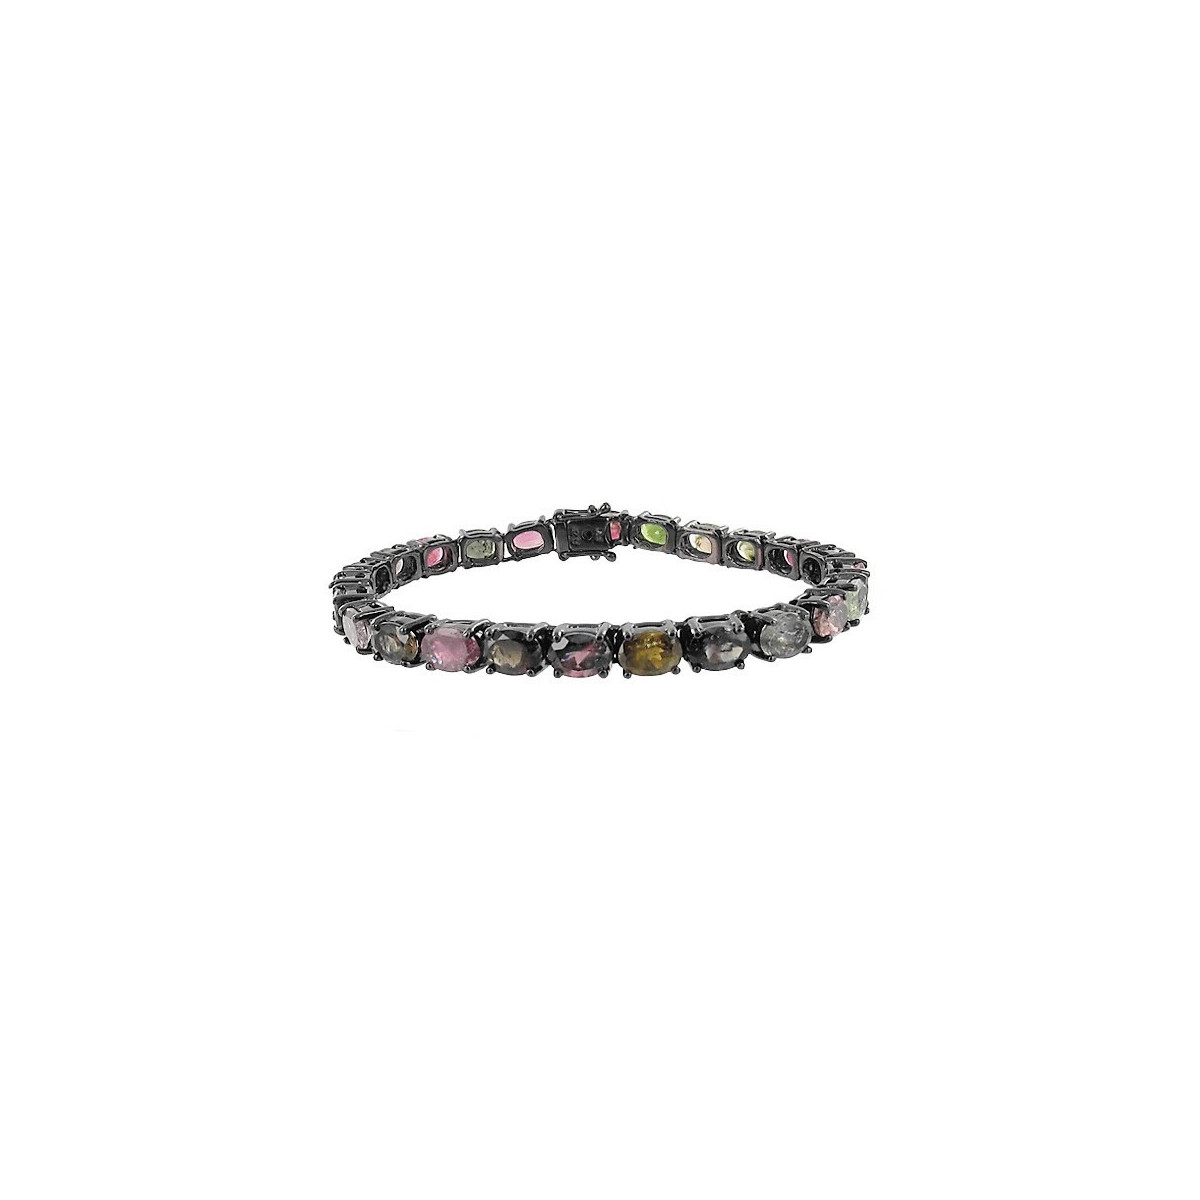 BRACELET SIAM SILVER AND TOURMALINES